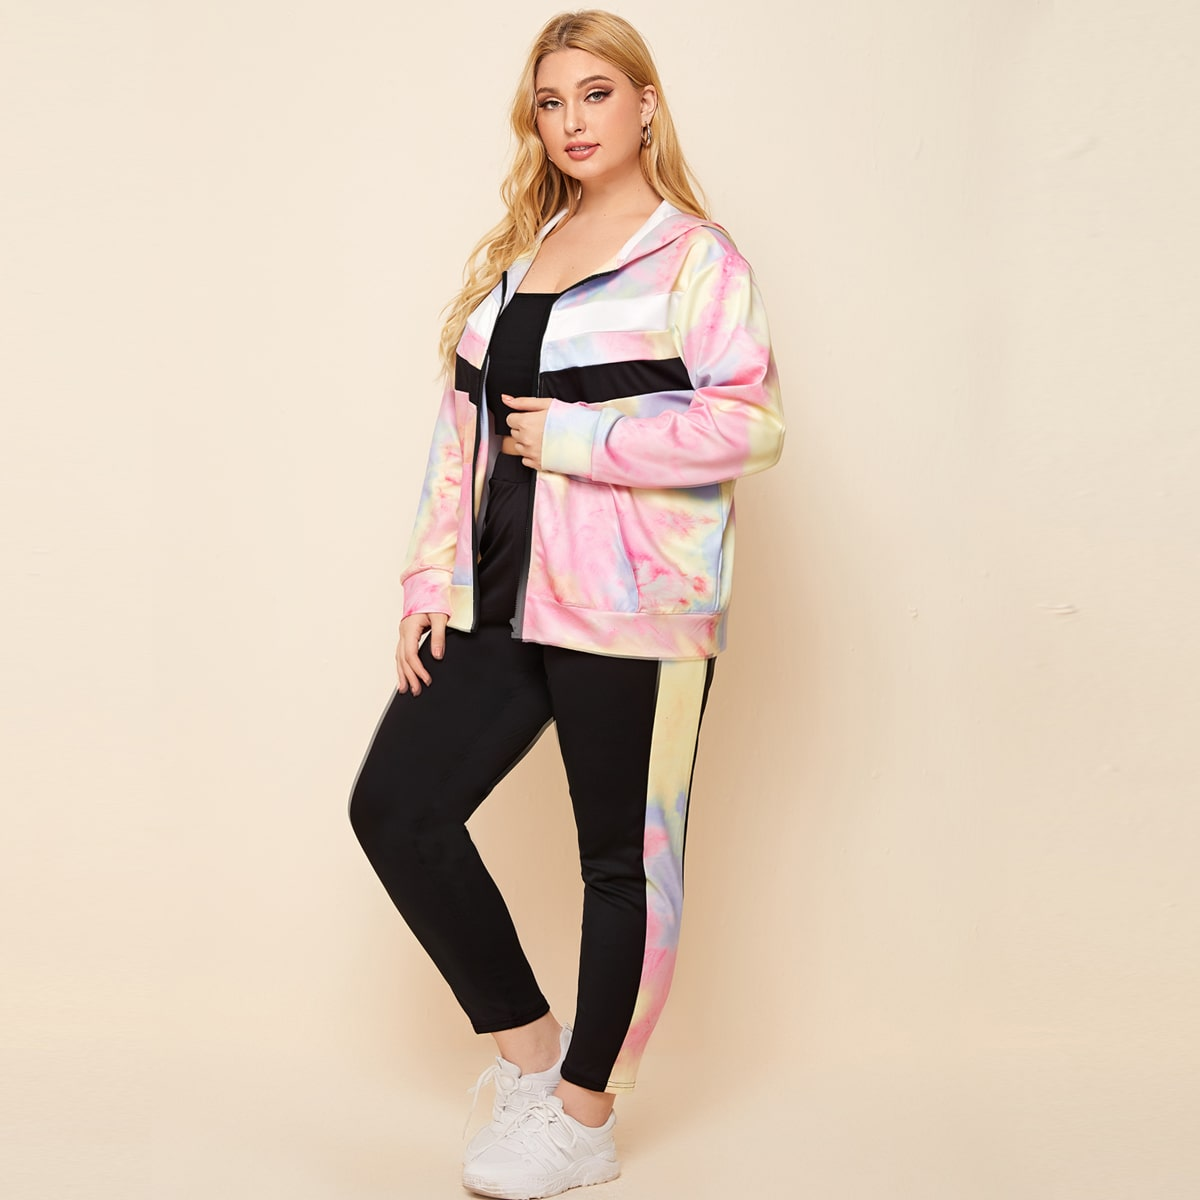 Plus Tie Dye Zip Up Hoodie & Colorblock Leggings